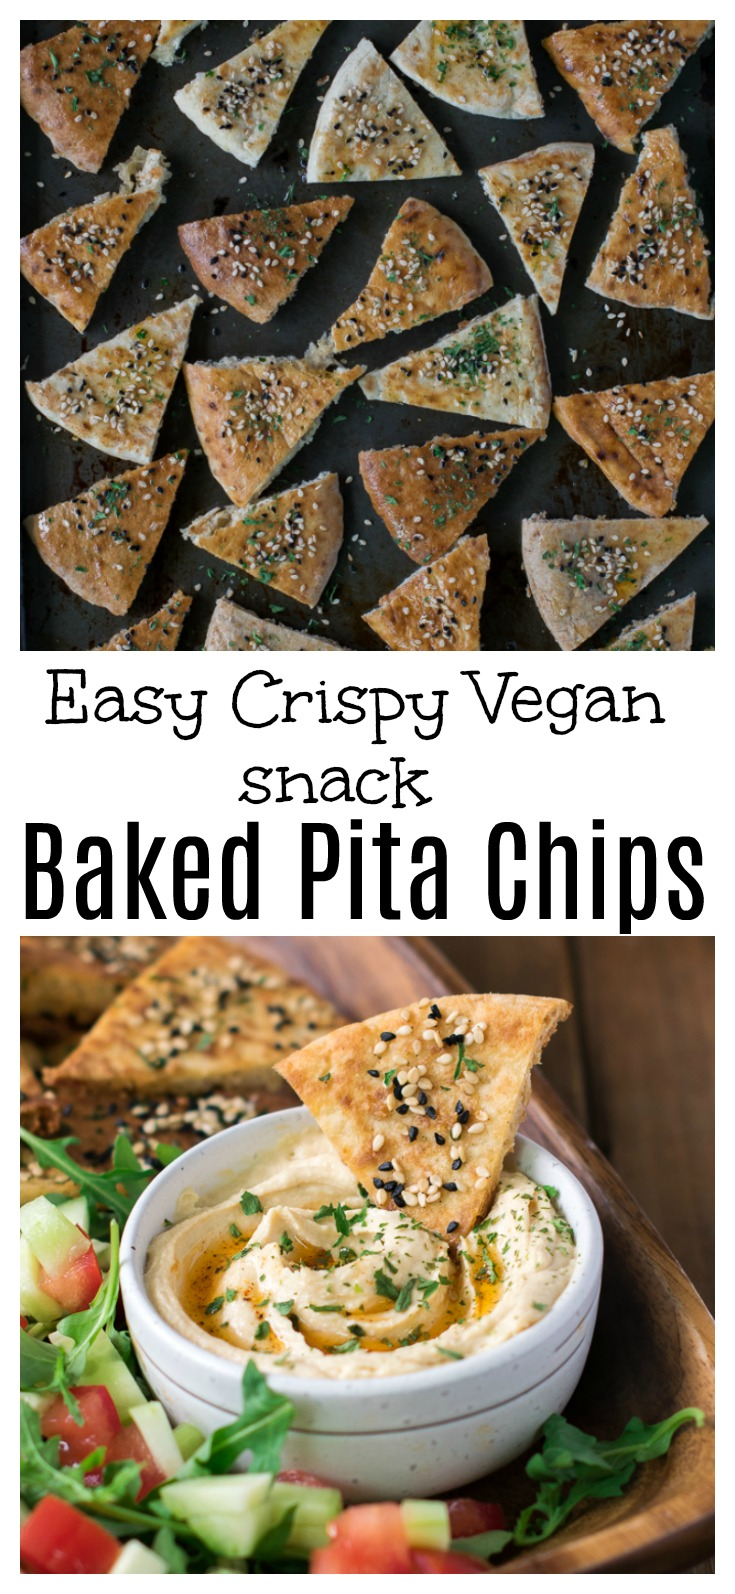 How to make crispy baked pita chips at home | Baked pita chips